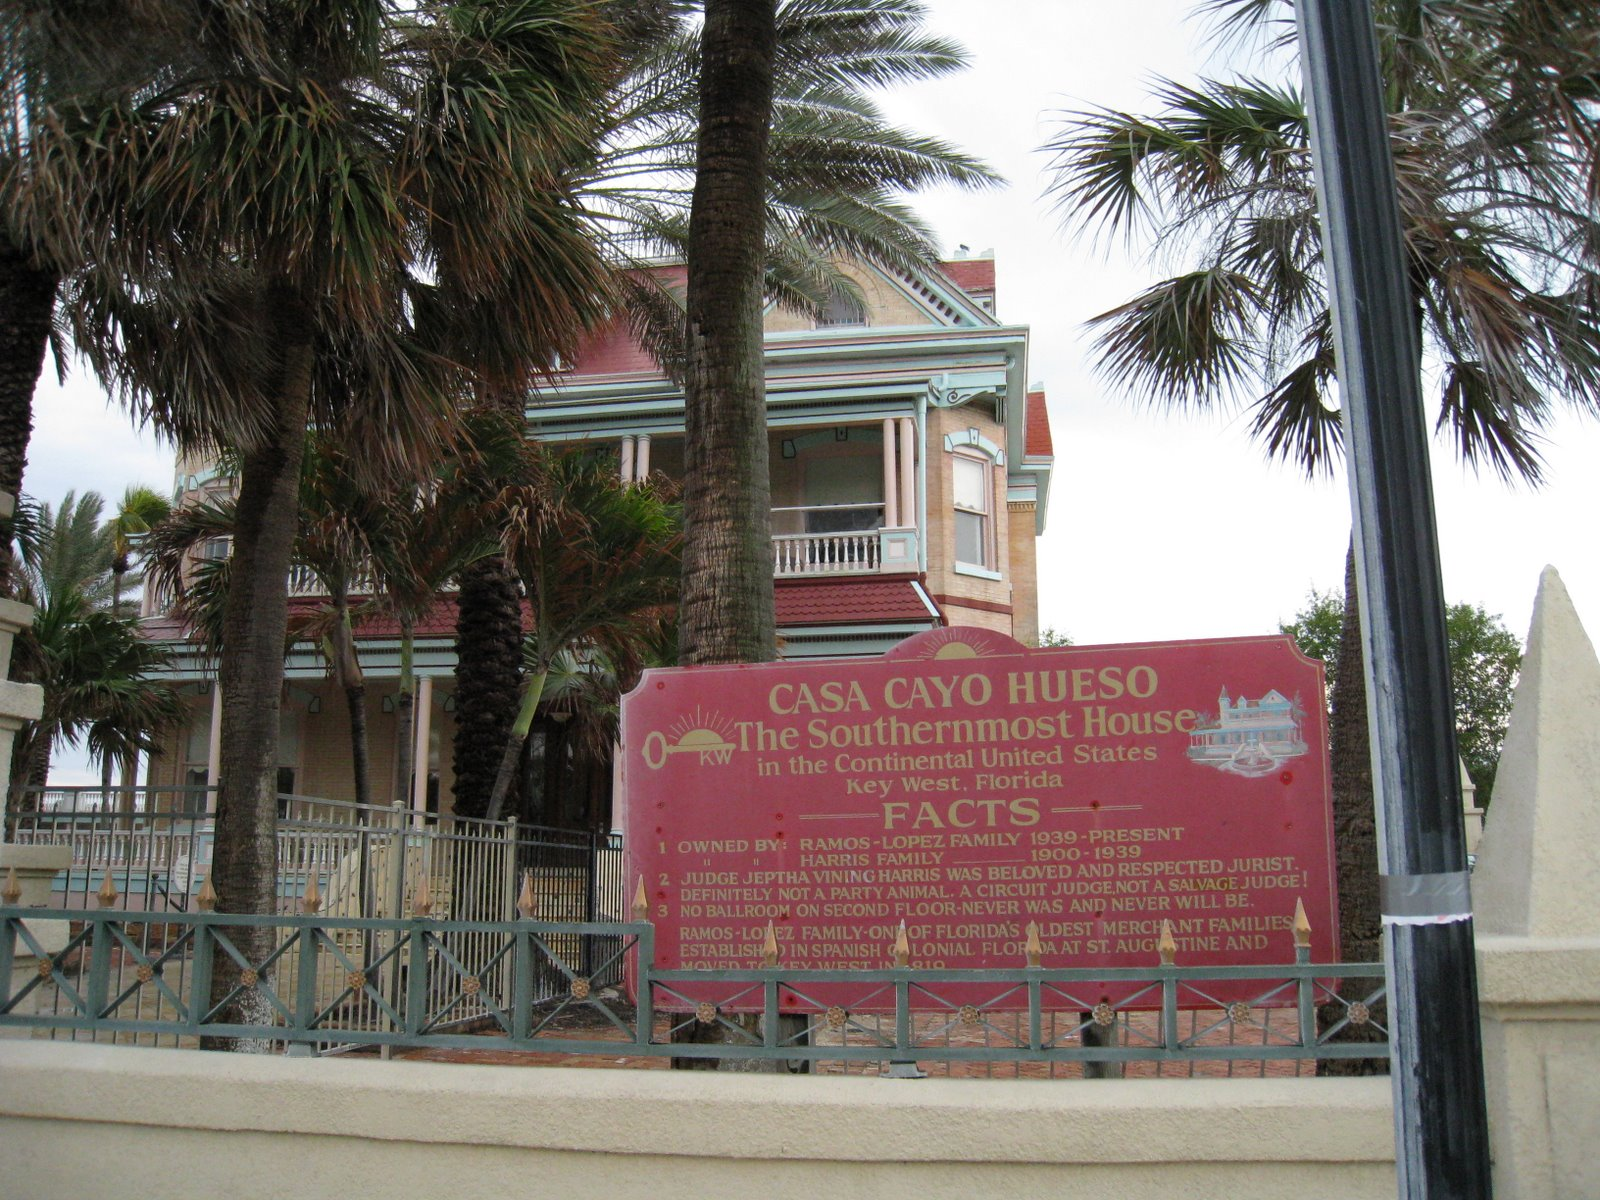 """More Marketing Crap - """"Oldest Southernmost house in the Continental USA"""". There are other houses that are even more """"southerner"""" than this one .. hence the word """"oldest"""" to describe this one."""